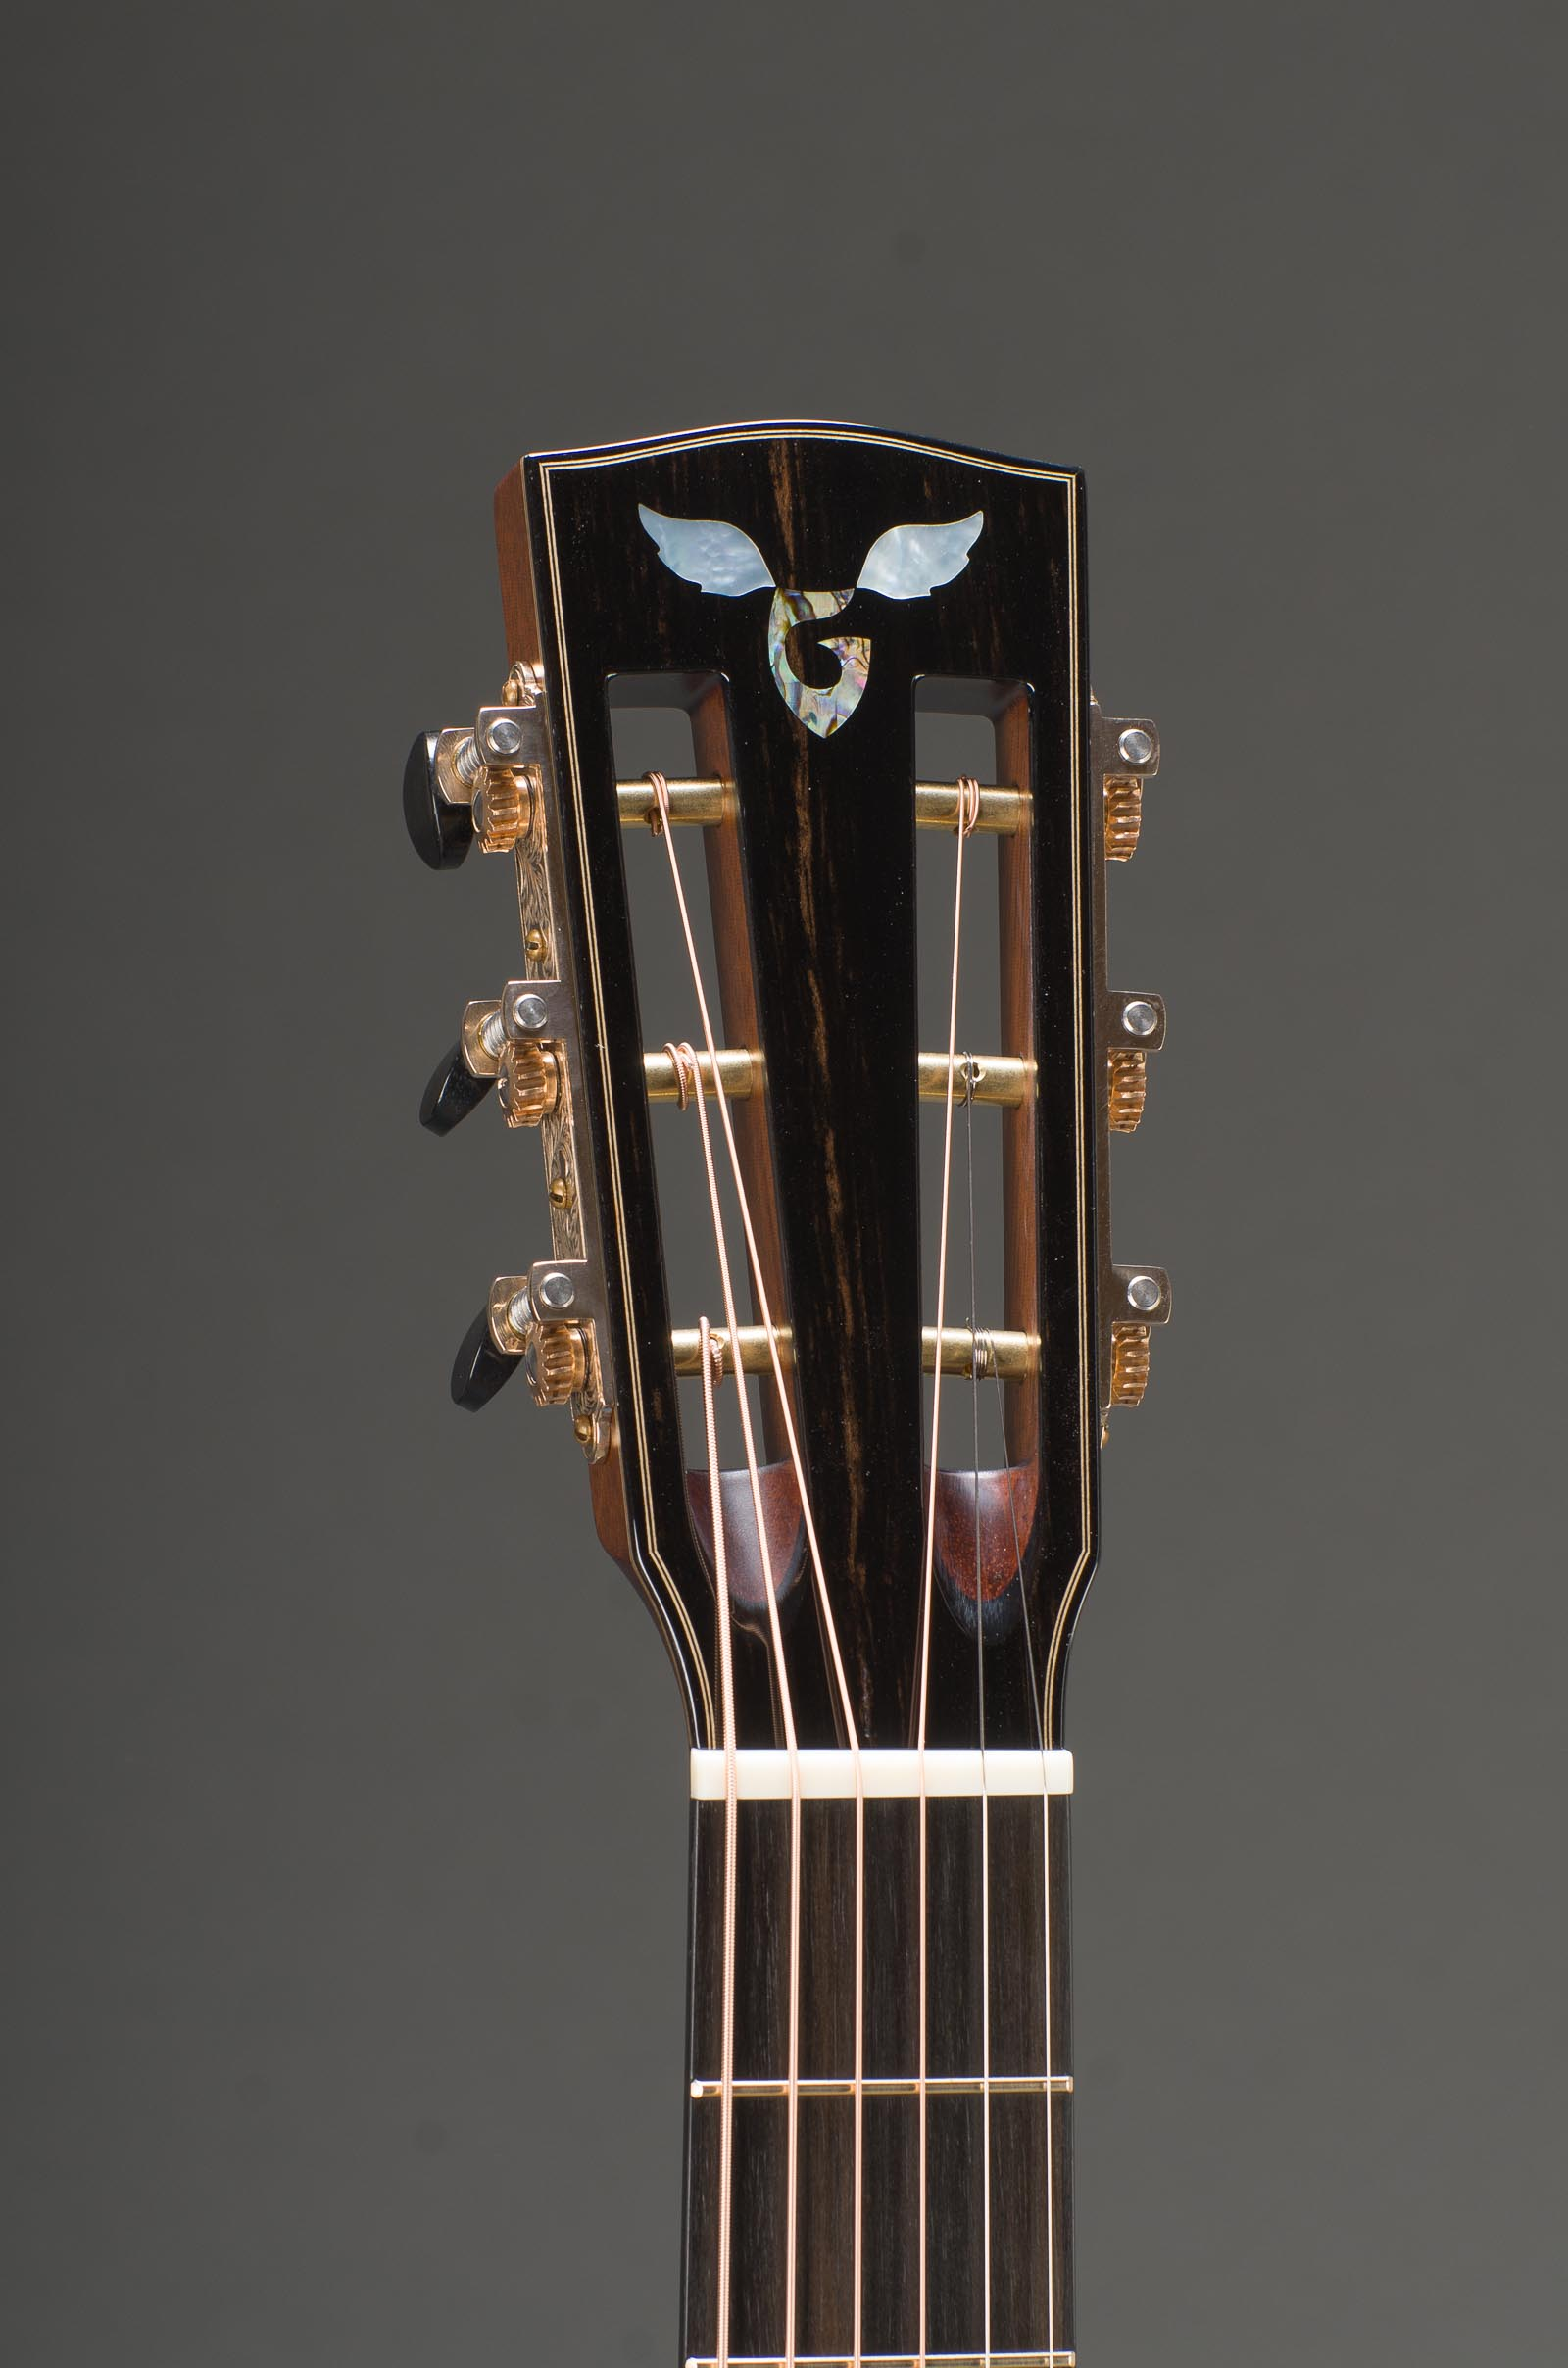 12-Fret Macassar Ebony Parlor Cutaway With Engelmann Spruce Top And Ebony Binding, Slotted Peghead Option, Waverly Bronze Patina Tuners With Ebony Buttons